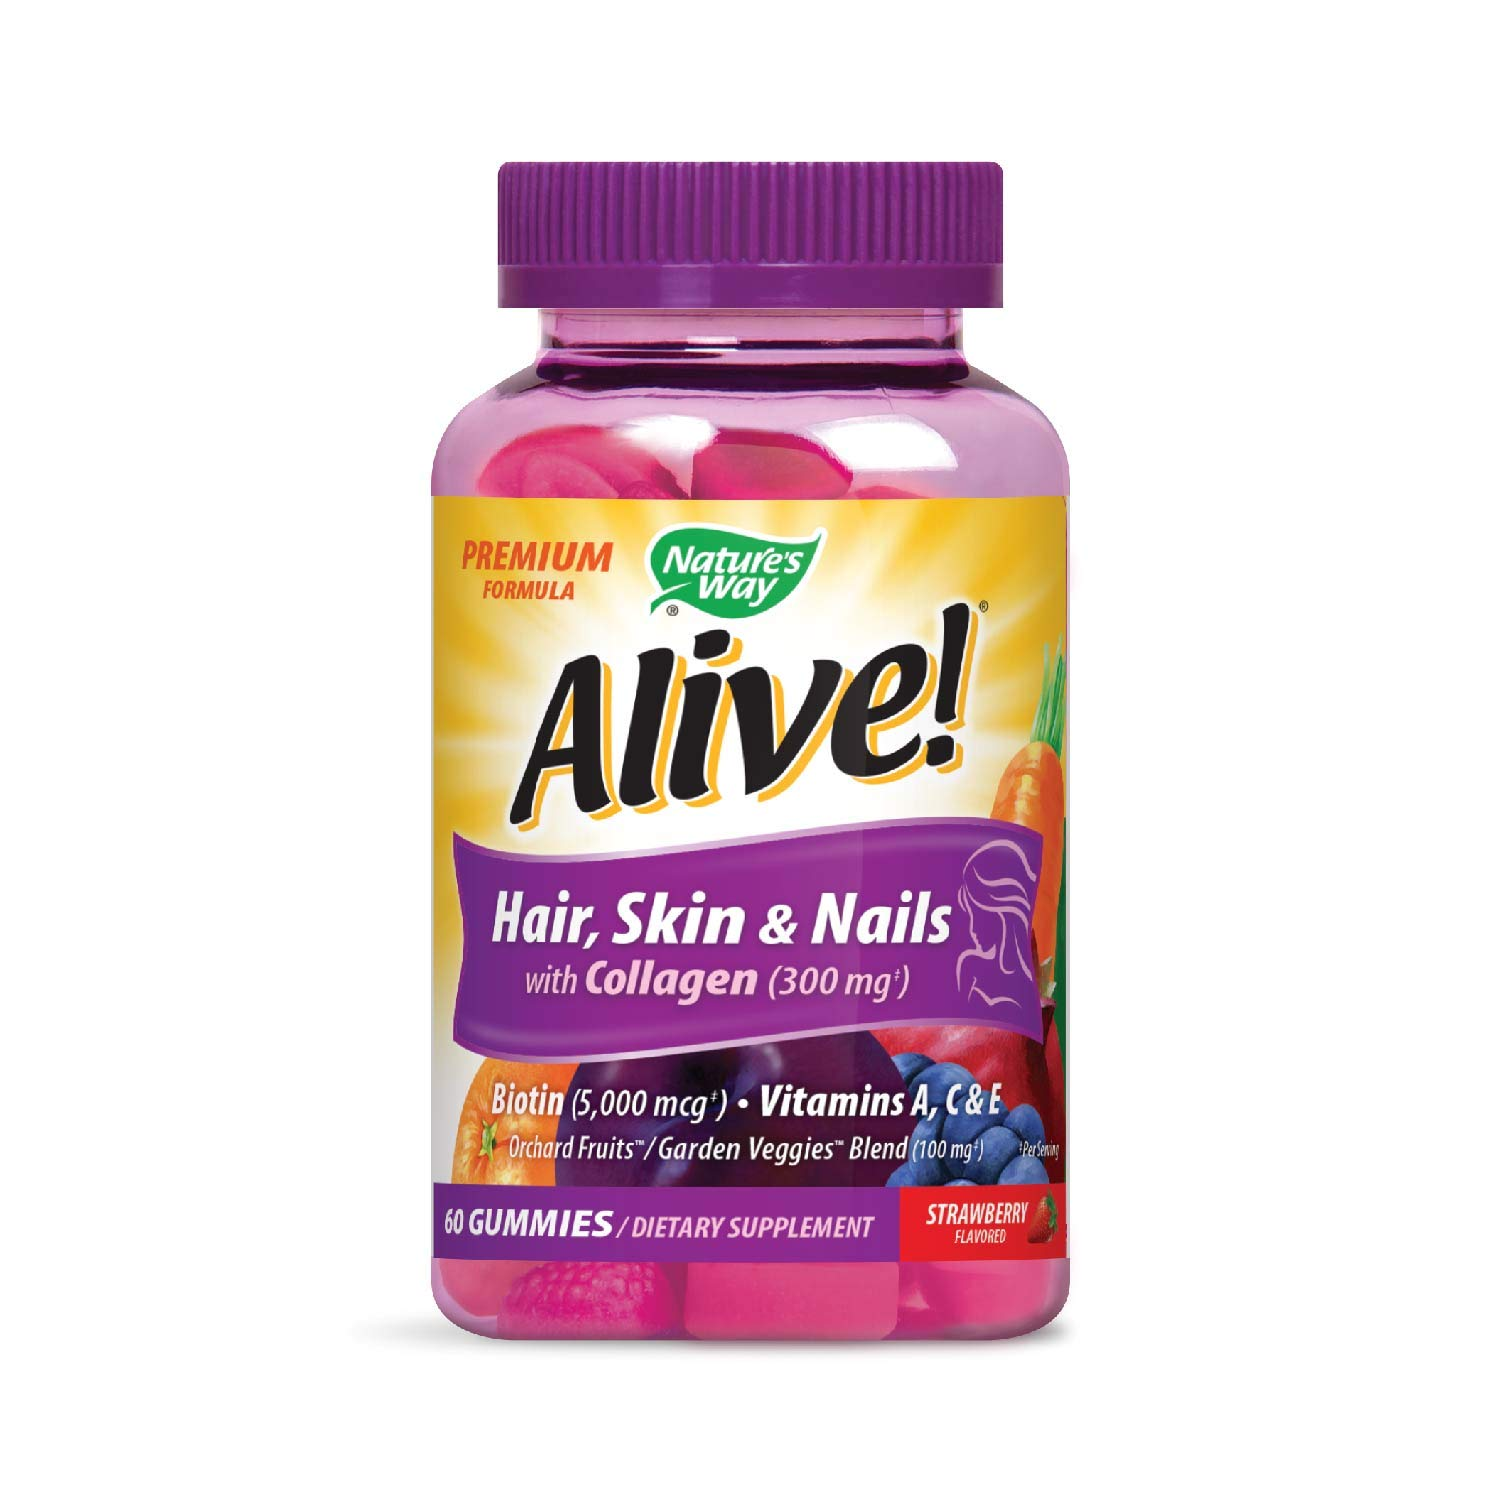 Amazon.com: Alive! Premium Hair, Skin and Nails Multivitamin with Biotin and Collagen, 60 Count: Health & Personal Care